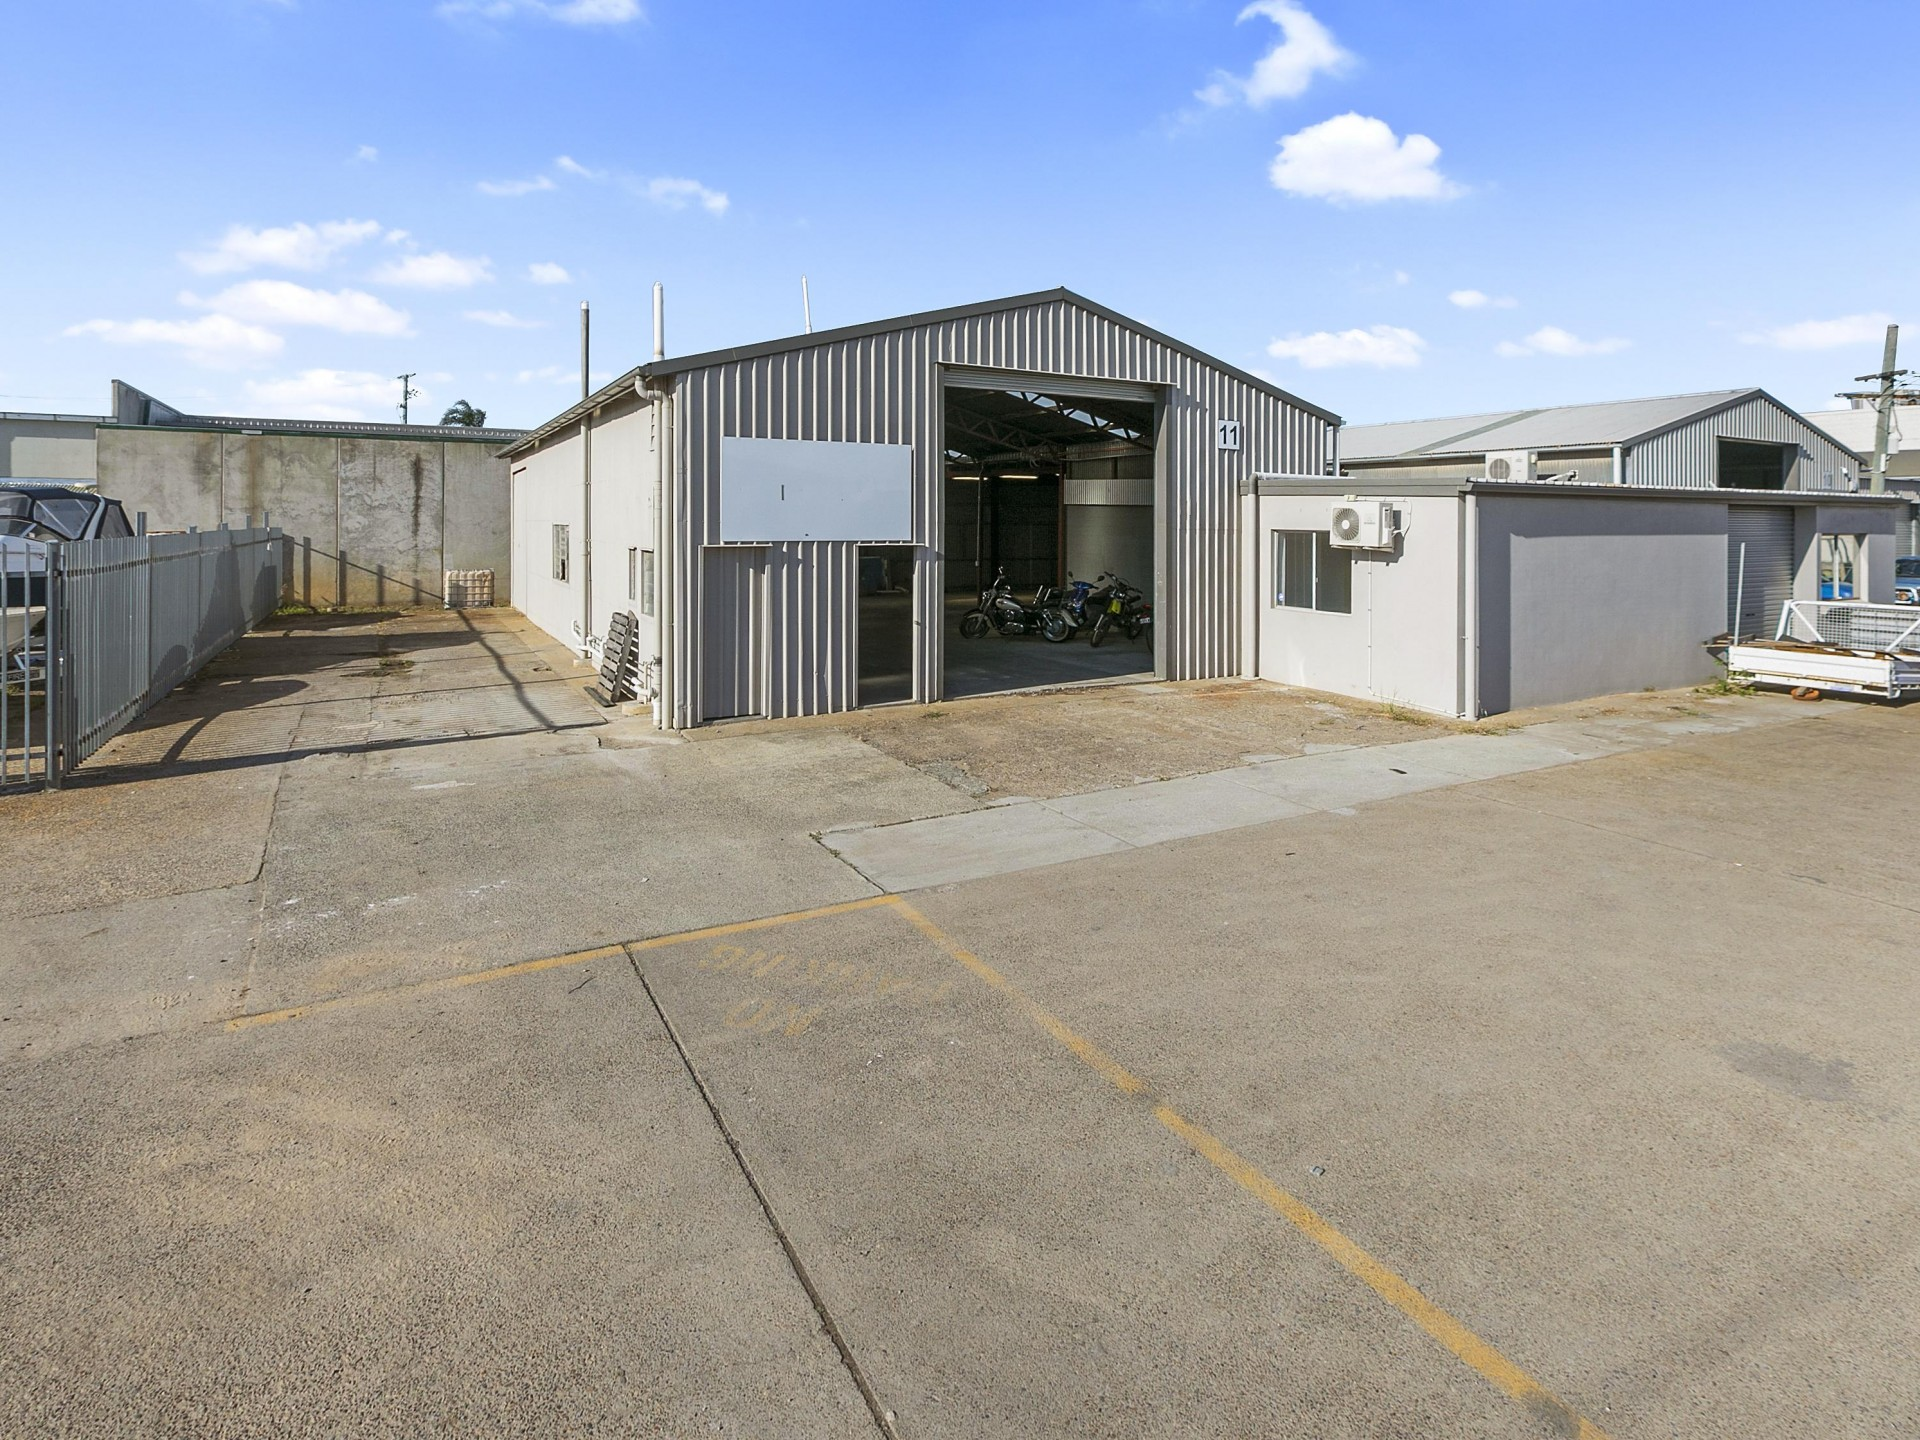 200m2 - 300M2 Sheds Available Now - Incentives On Offer!